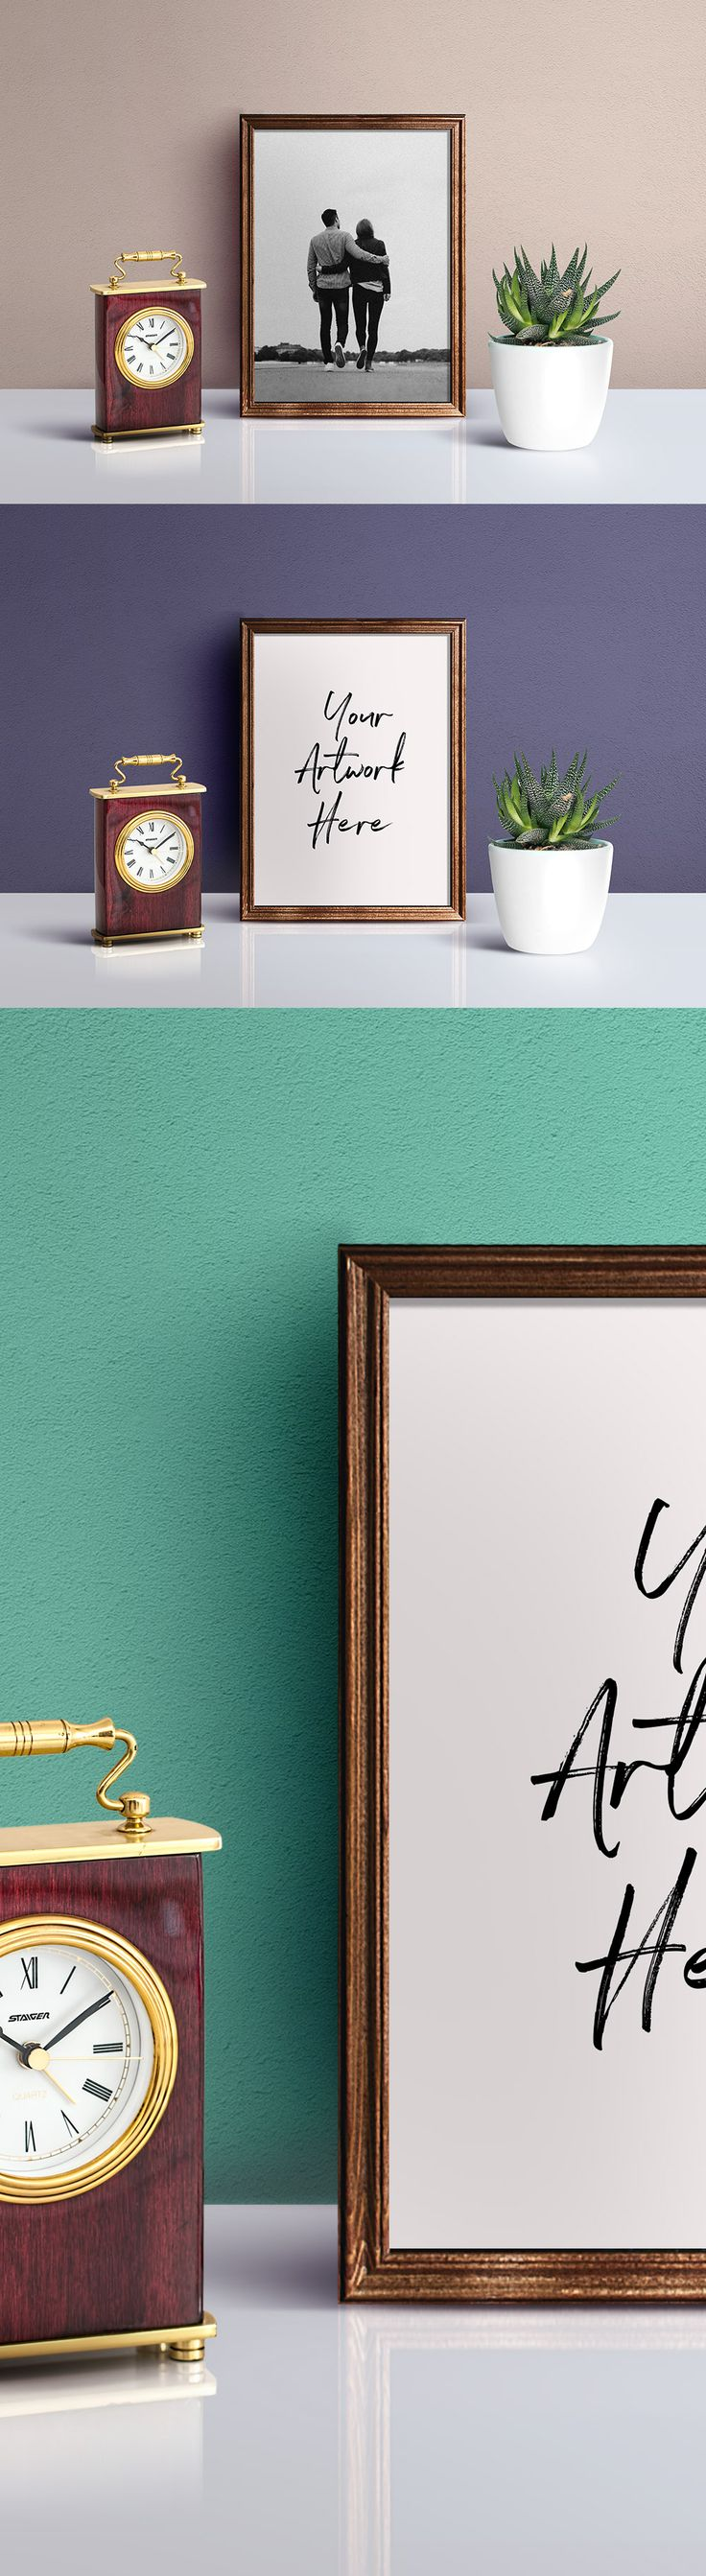 Picture Frame Mockup PSD Free